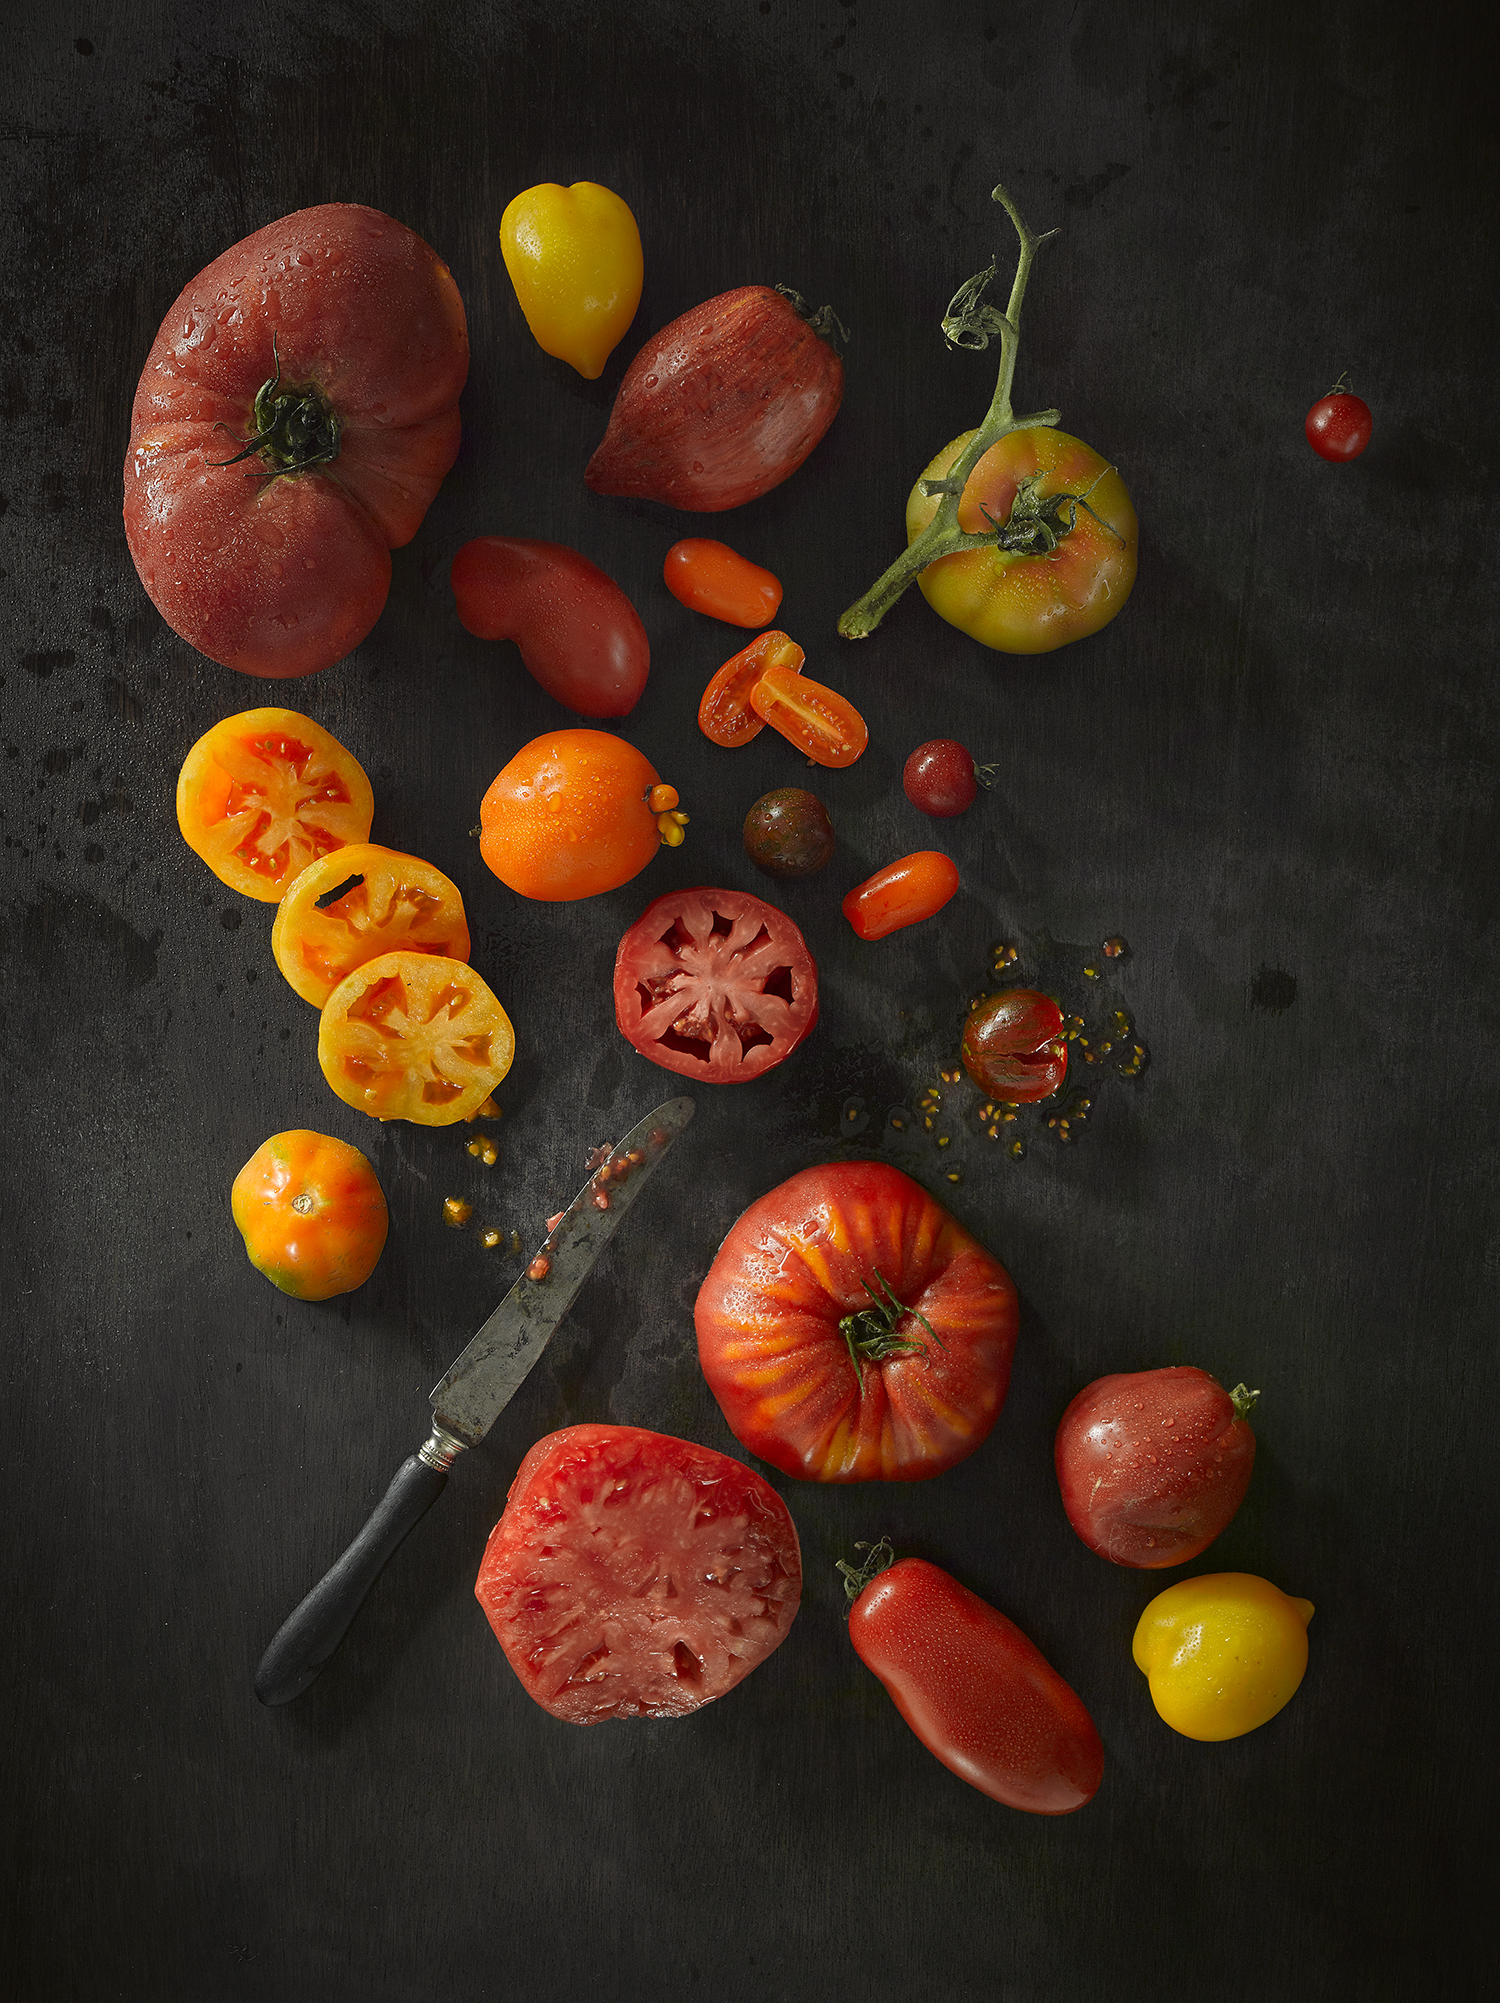 Food photography, mixed tomatoes create this still life food composition from advertising Croydon and London photographer chris howlett. The reds, yellows and ripeness of tomatoes look bright against dark wood.